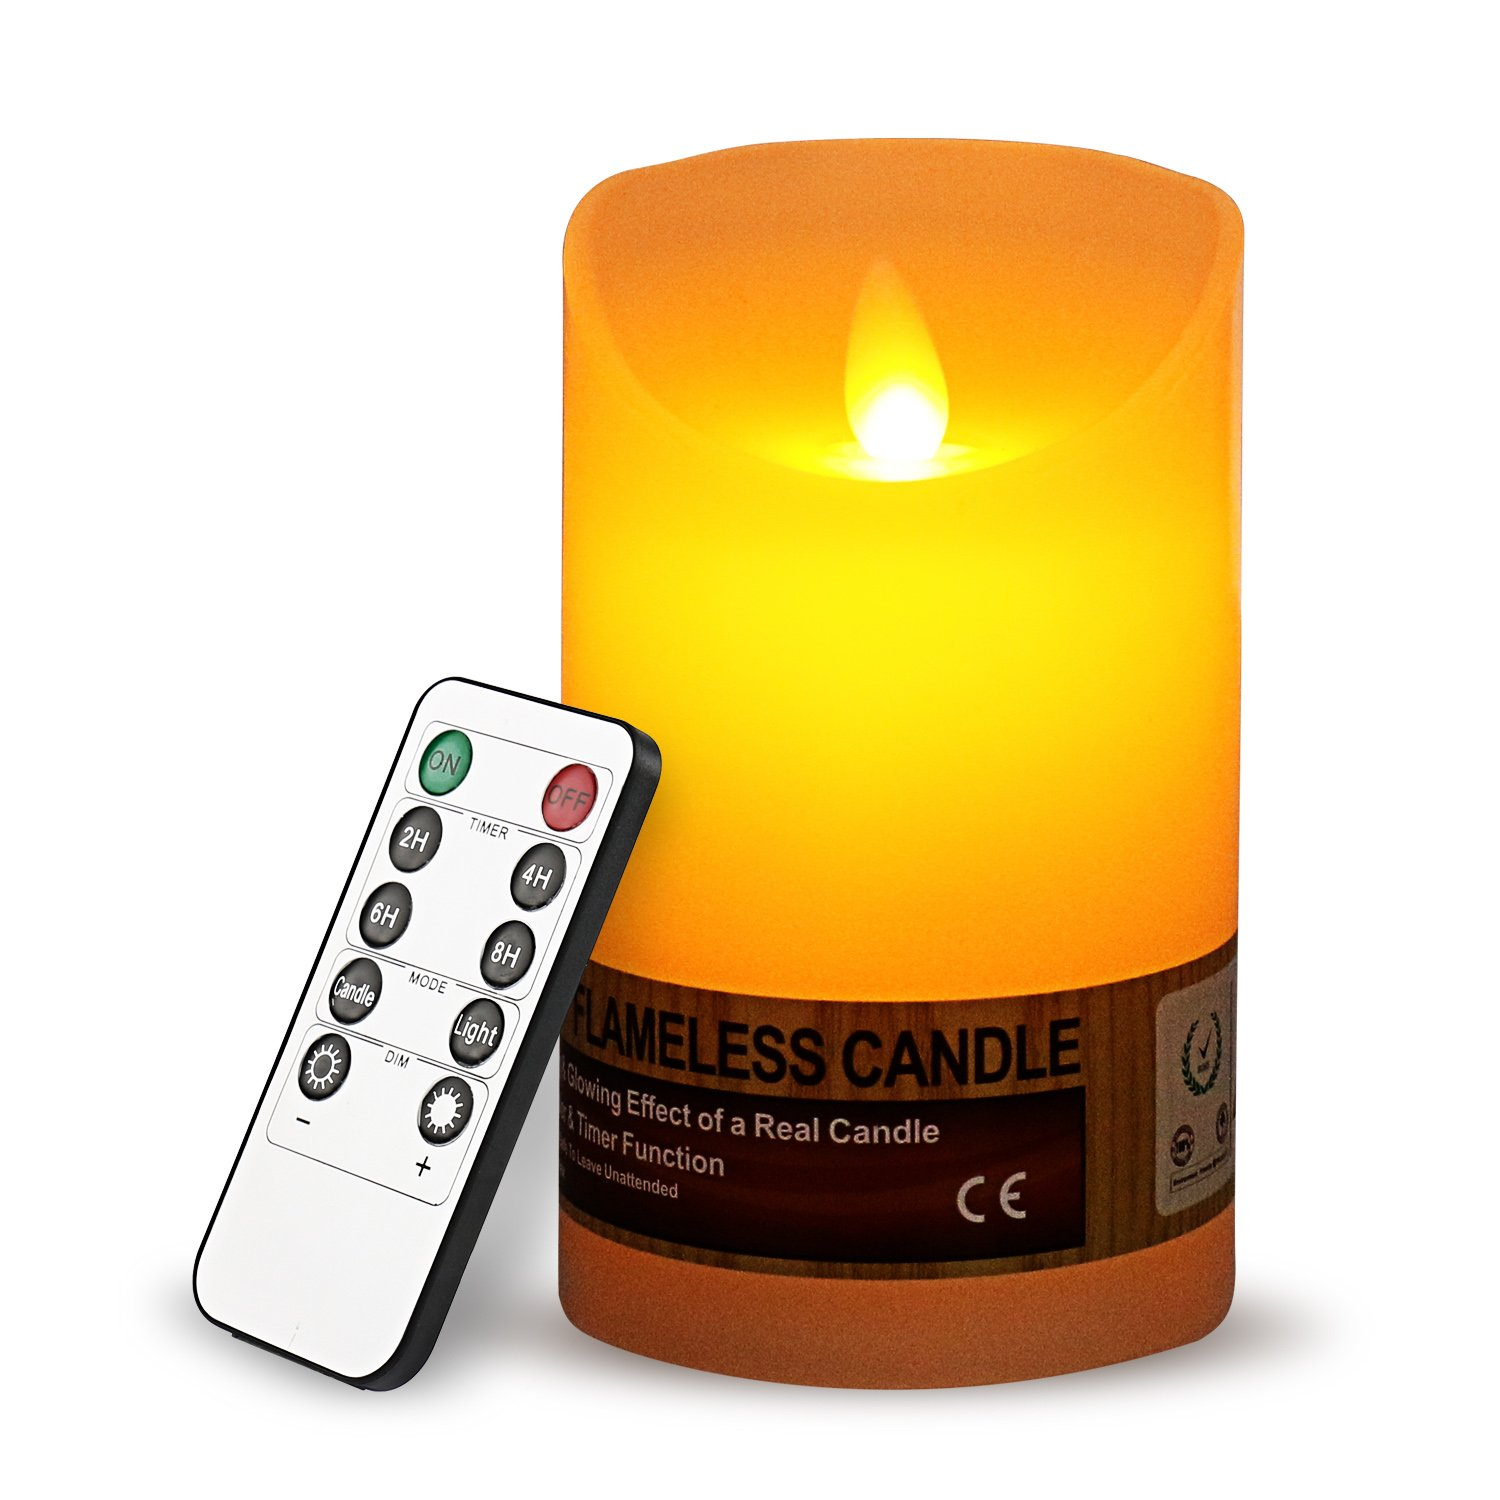 analysis flameless candles Candle business & industry facts regarding candle making, candle equipment and candles.